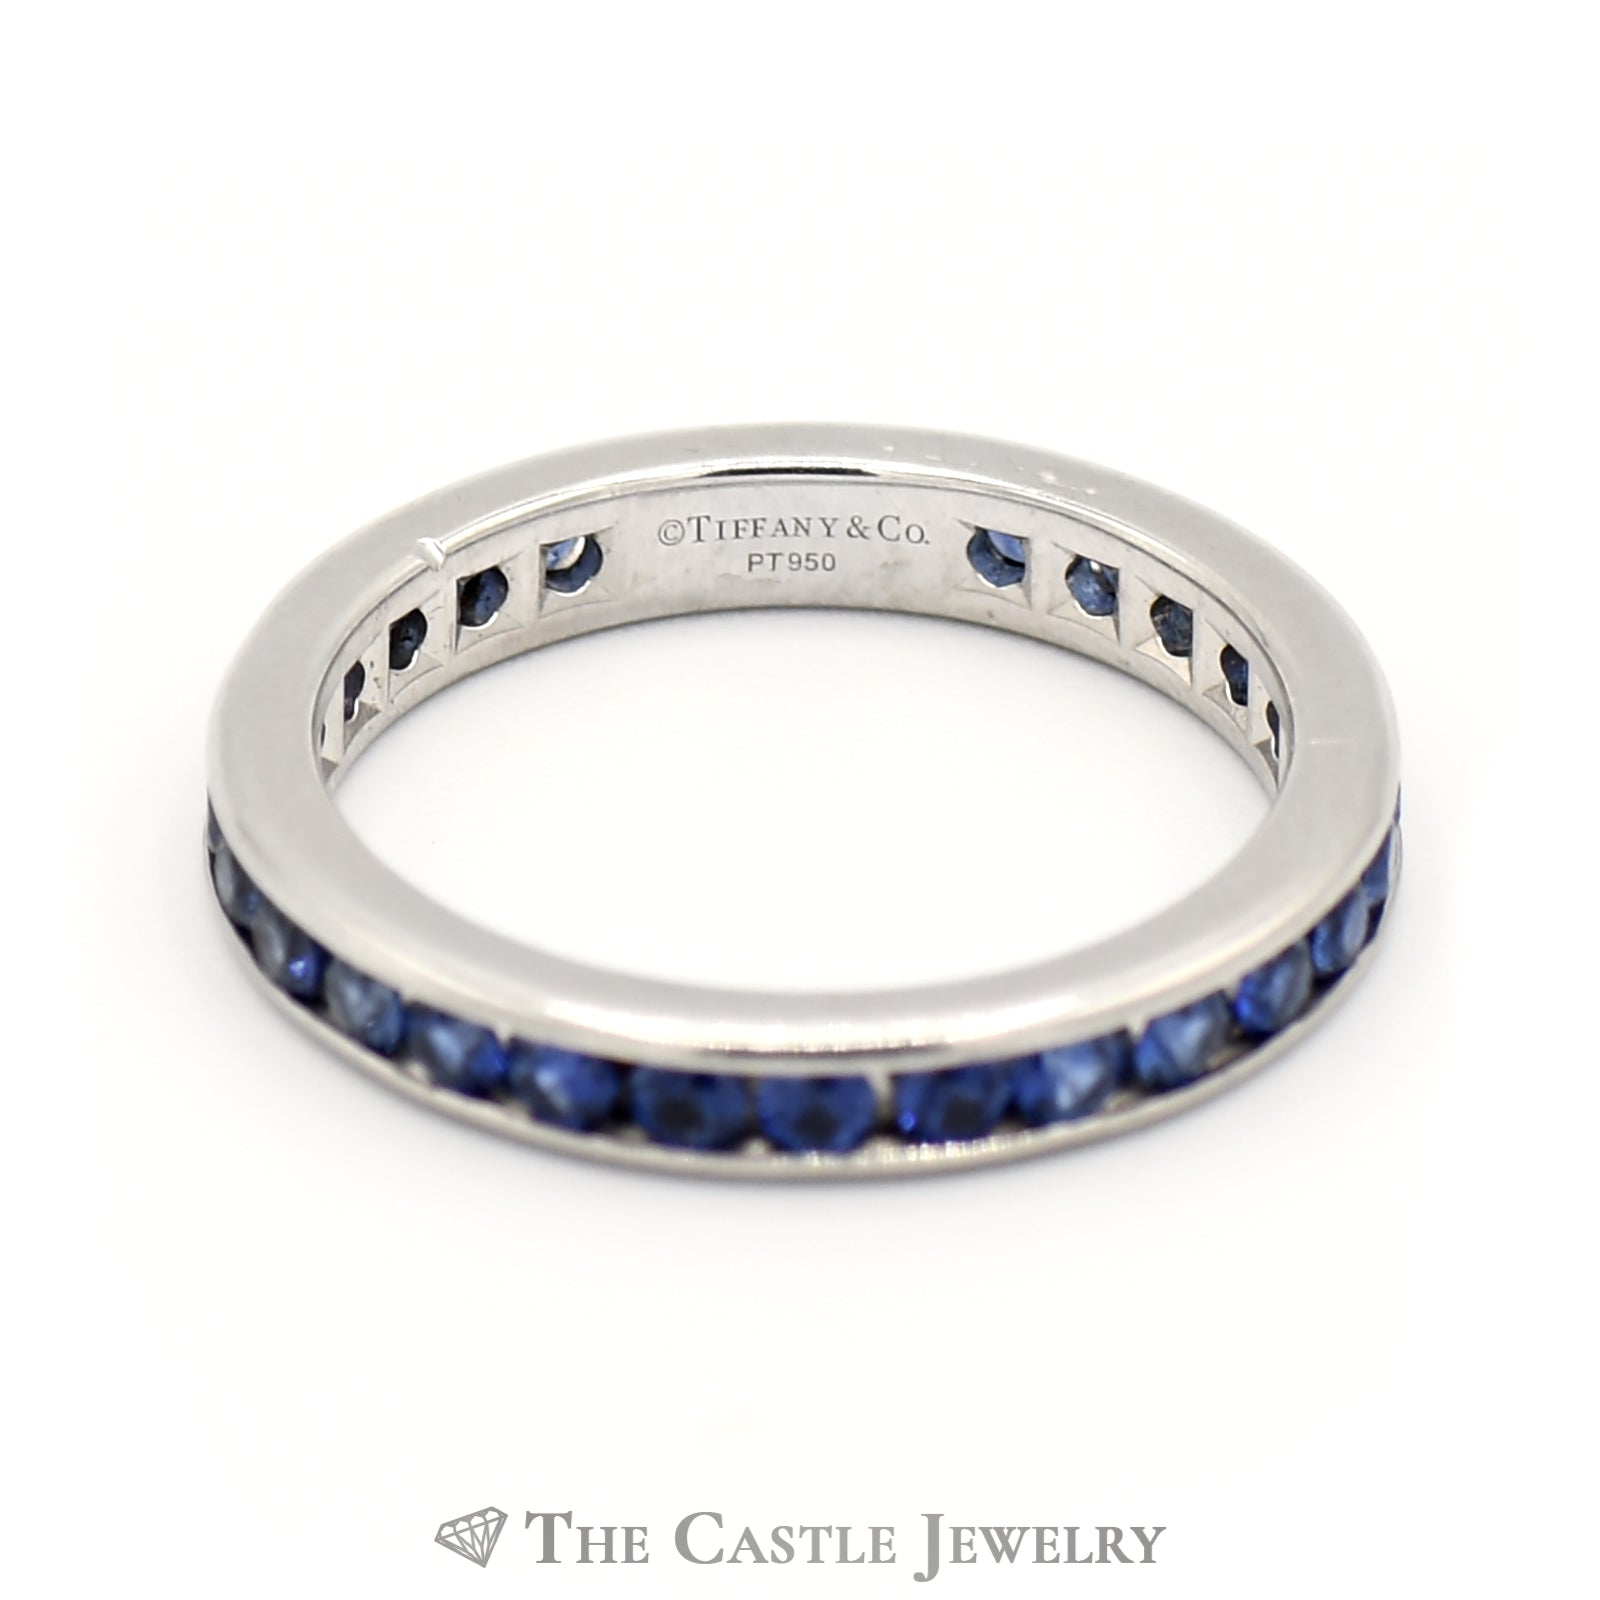 Tiffany & Company Platinum And Sapphire Eternity Band-2